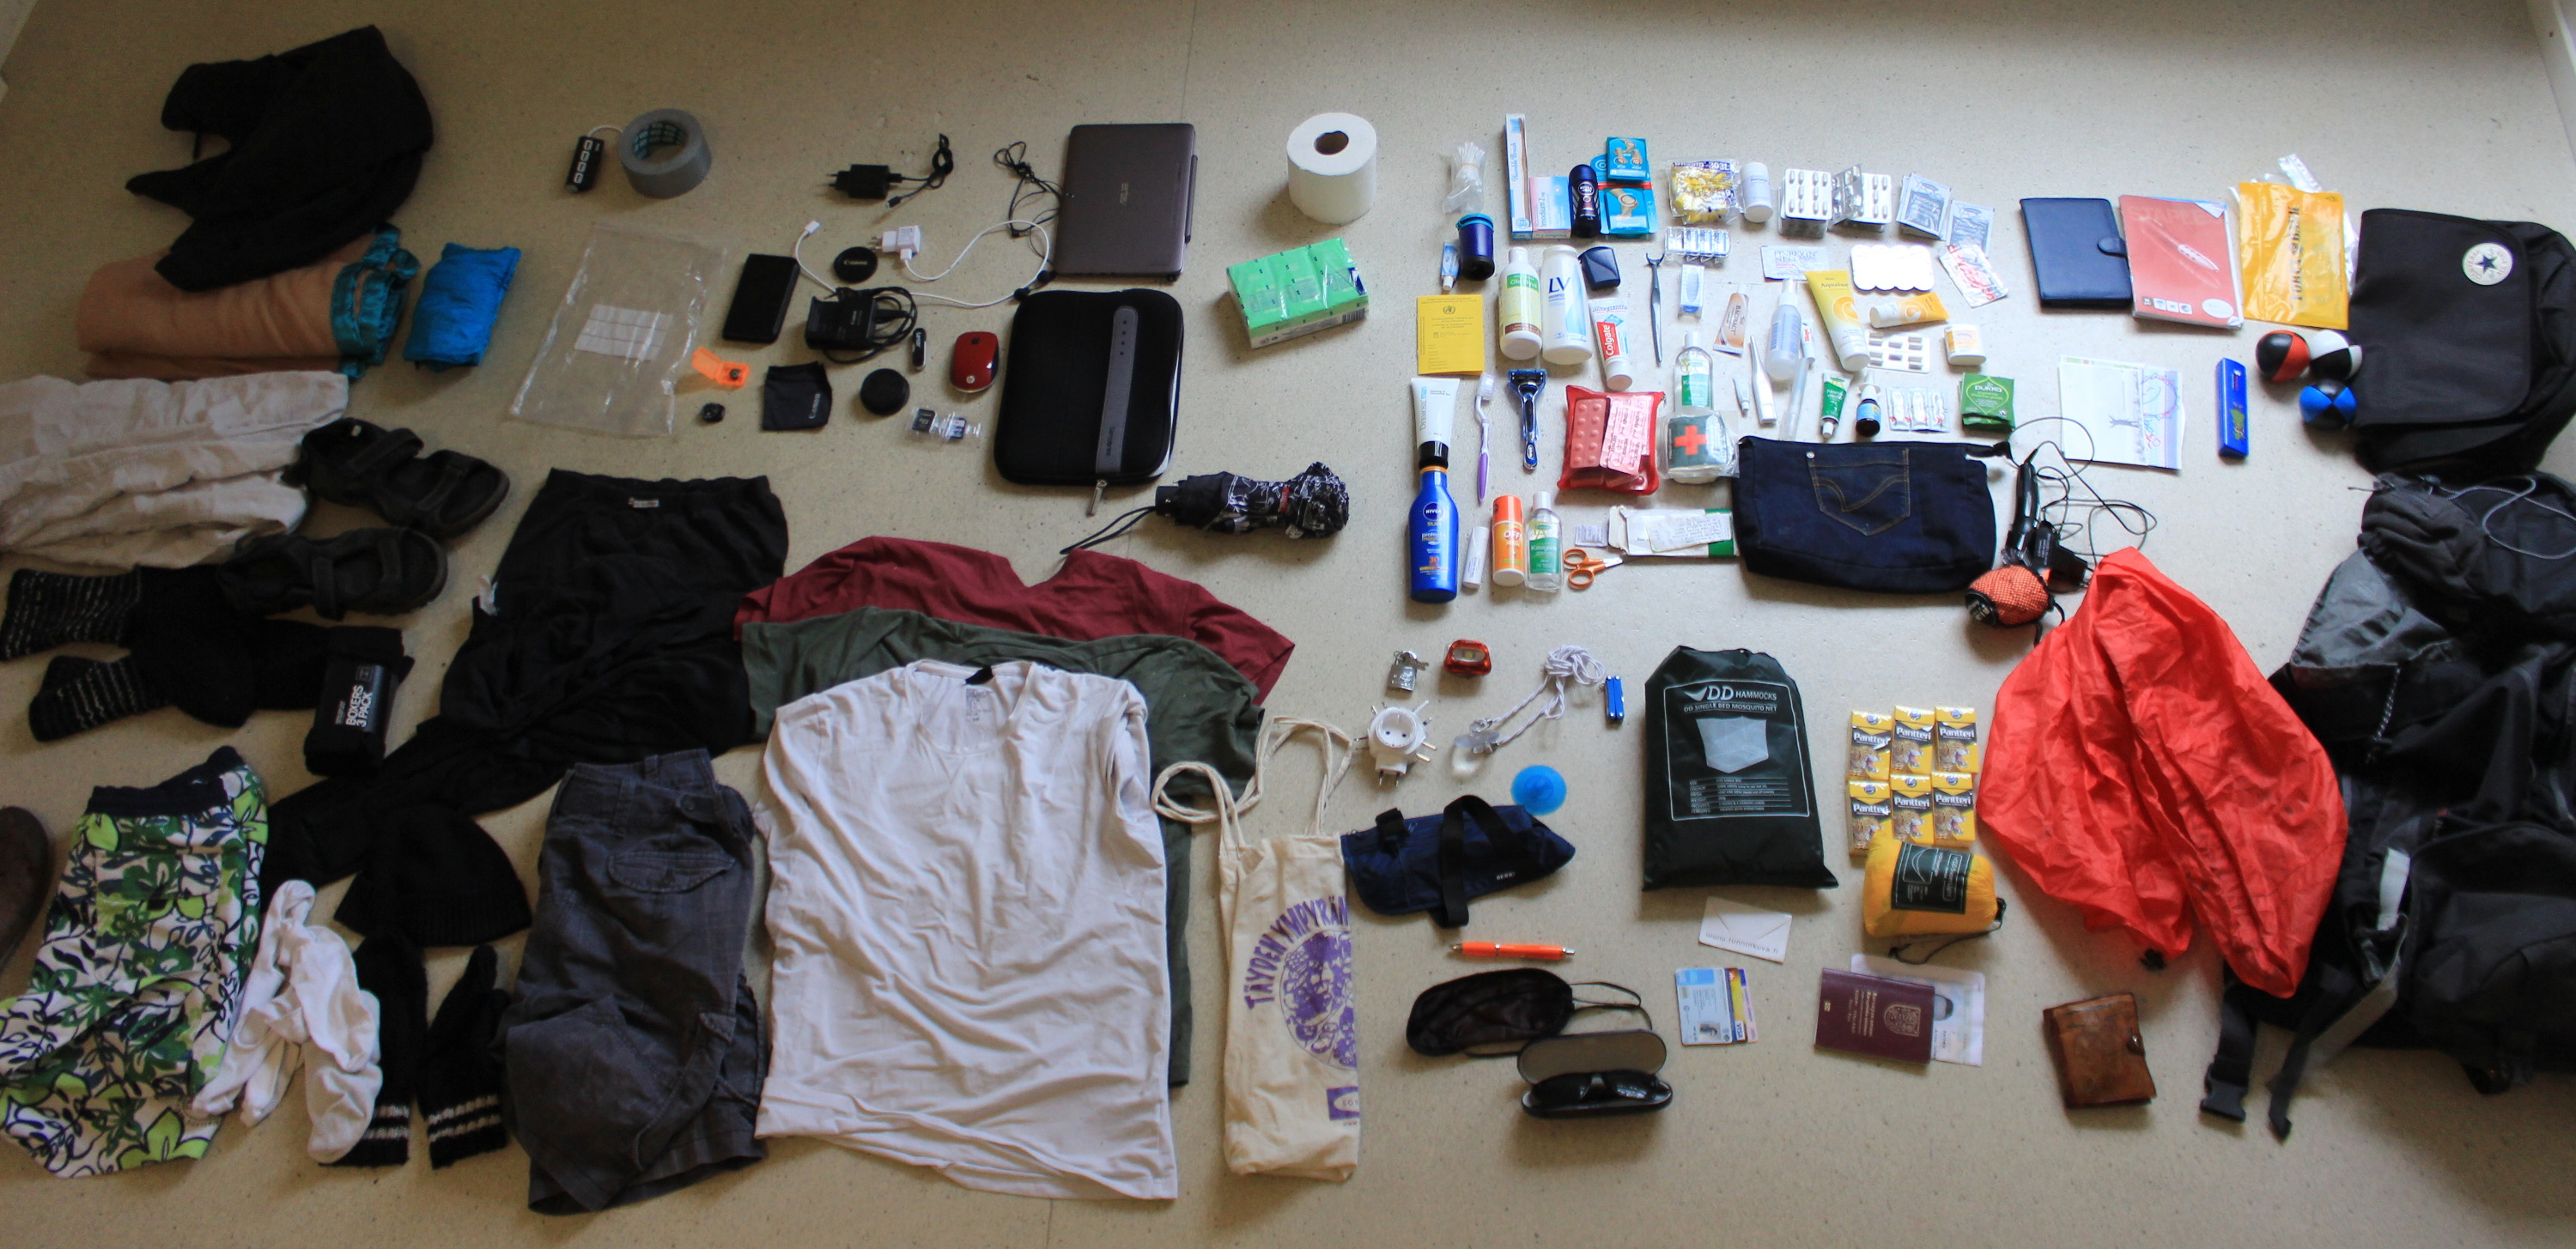 Items to pack for a trip around the world. Packing for a round the world trip list.